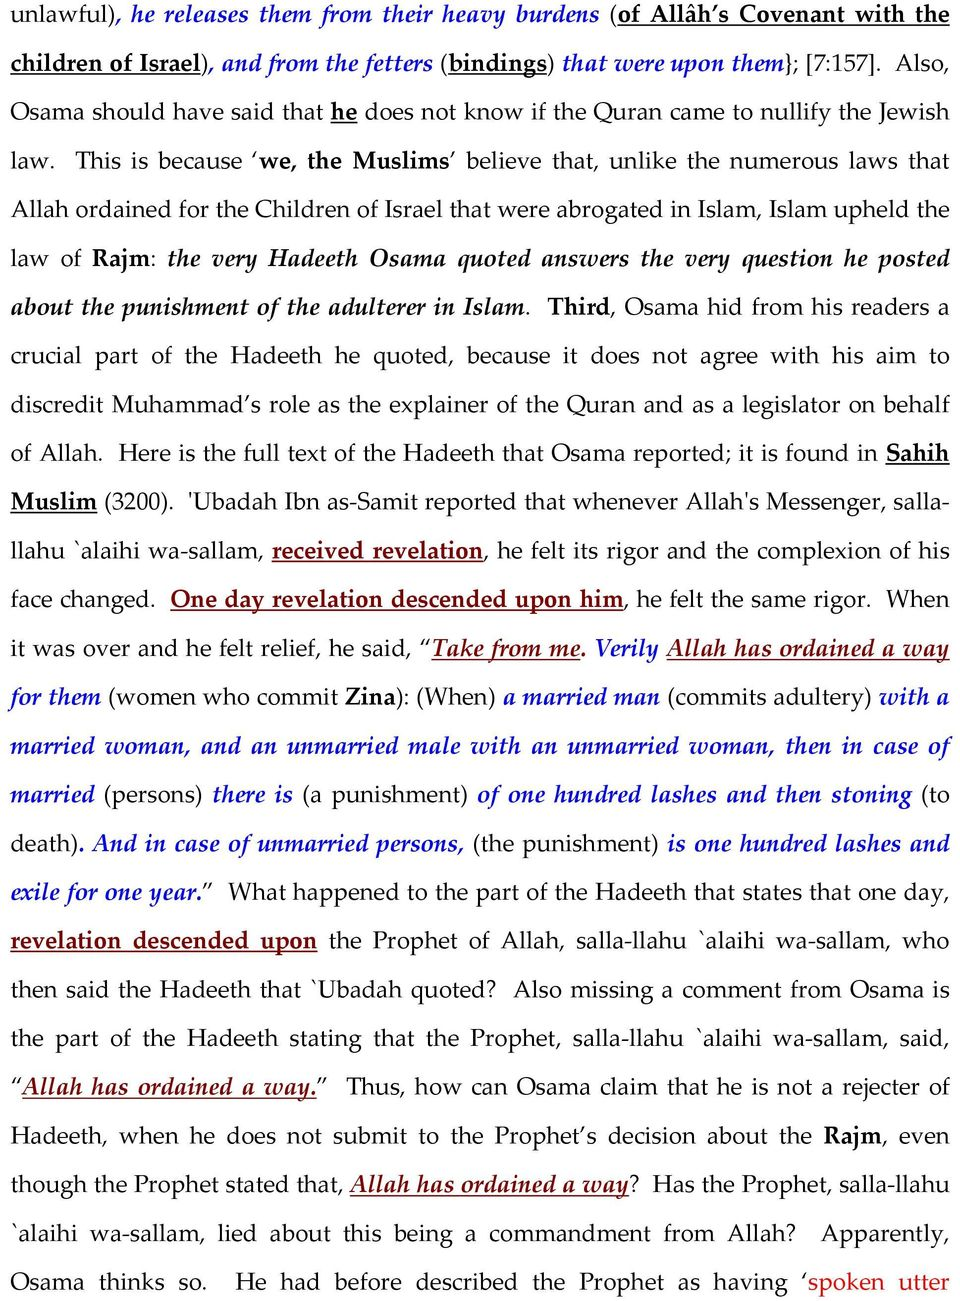 This is because we, the Muslims believe that, unlike the numerous laws that Allah ordained for the Children of Israel that were abrogated in Islam, Islam upheld the law of Rajm: the very Hadeeth